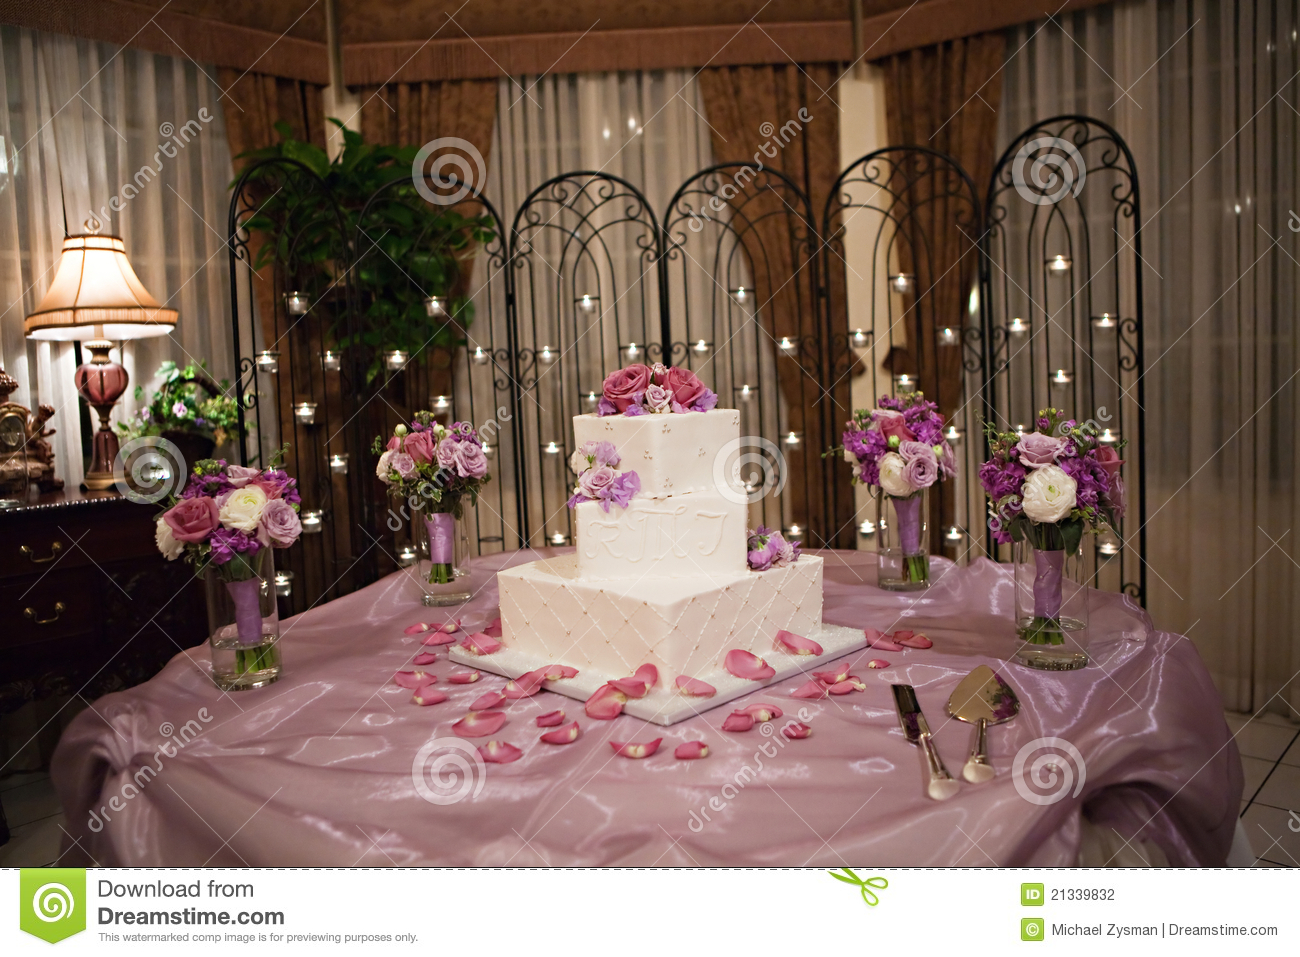 Image Result For Quinceanera Cakes Prices